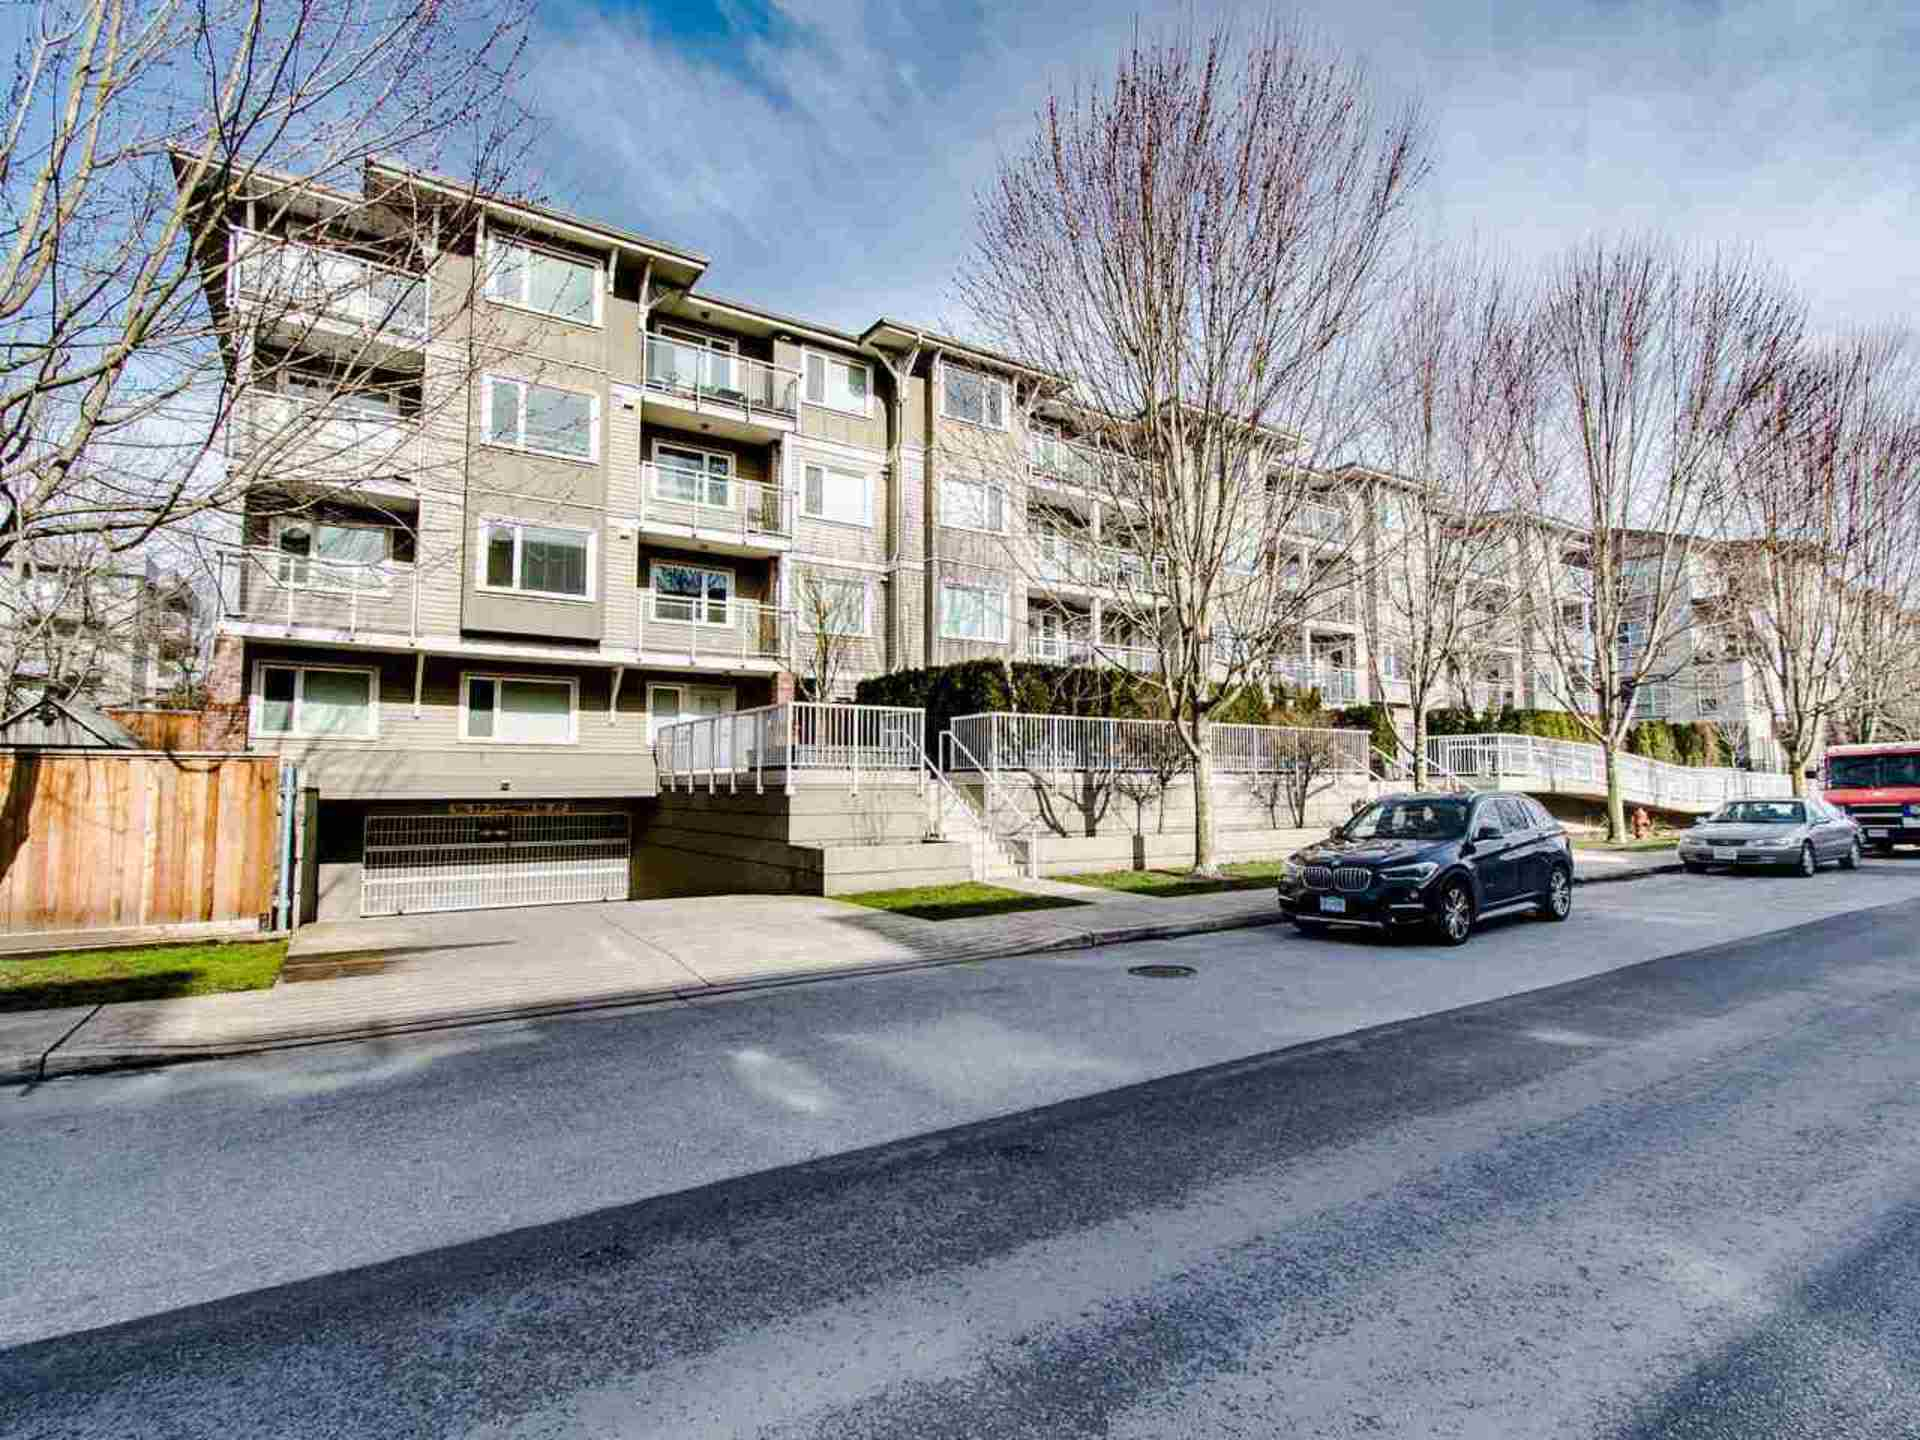 2373-atkins-avenue-central-pt-coquitlam-port-coquitlam-18 at 106 - 2373 Atkins Avenue, Central Pt Coquitlam, Port Coquitlam